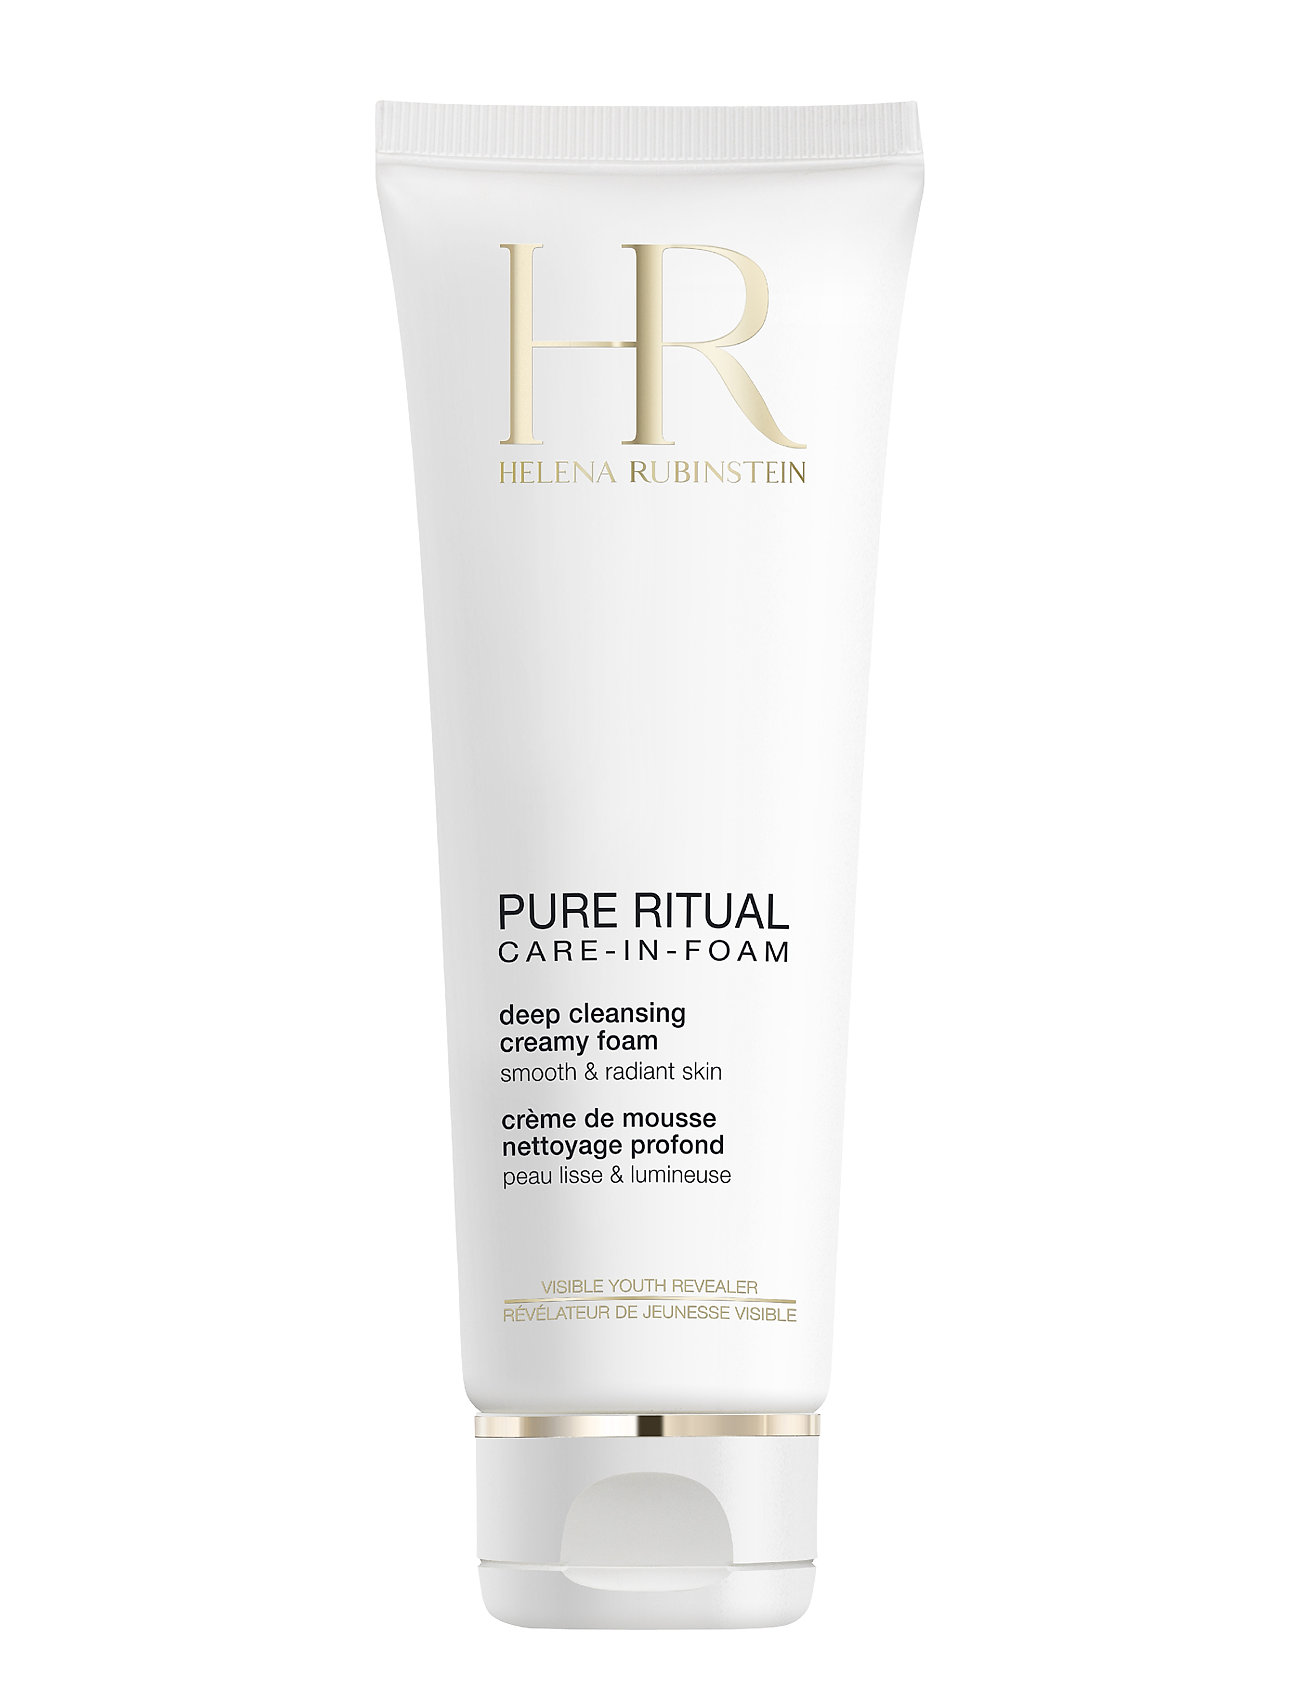 Pure ritual care-in-foam cleansing foam 125 ml fra helena rubinstein på boozt.com dk